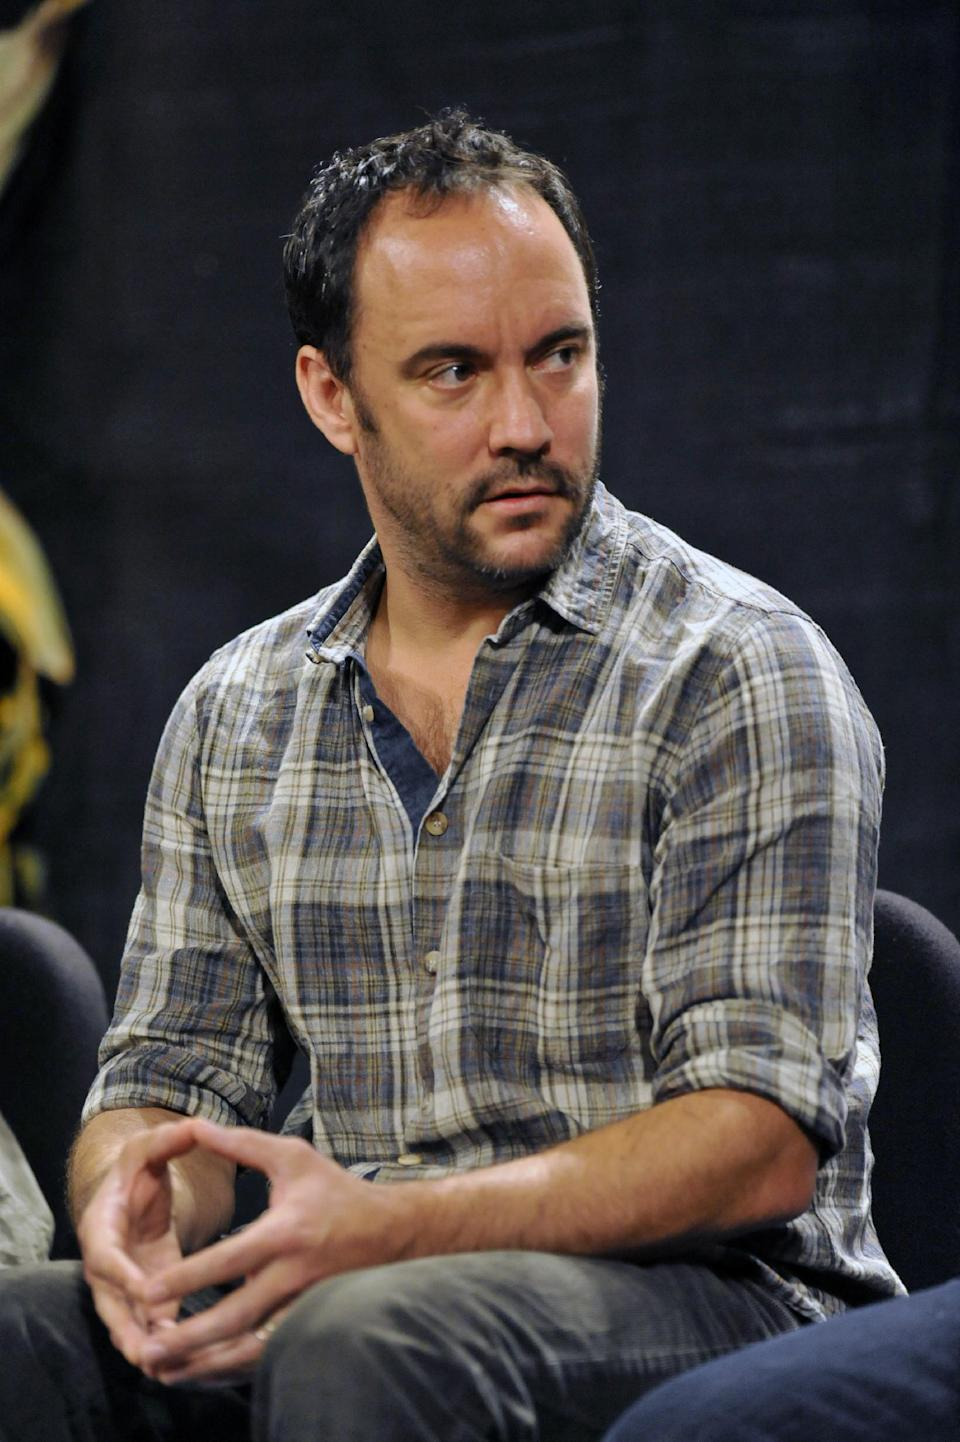 Dave Matthews attends a news conference prior to the start of the Farm Aid 2013 concert at Saratoga Performing Arts Center in Saratoga Springs, N.Y., Saturday, Sept. 21, 2013. (AP Photo/Hans Pennink)